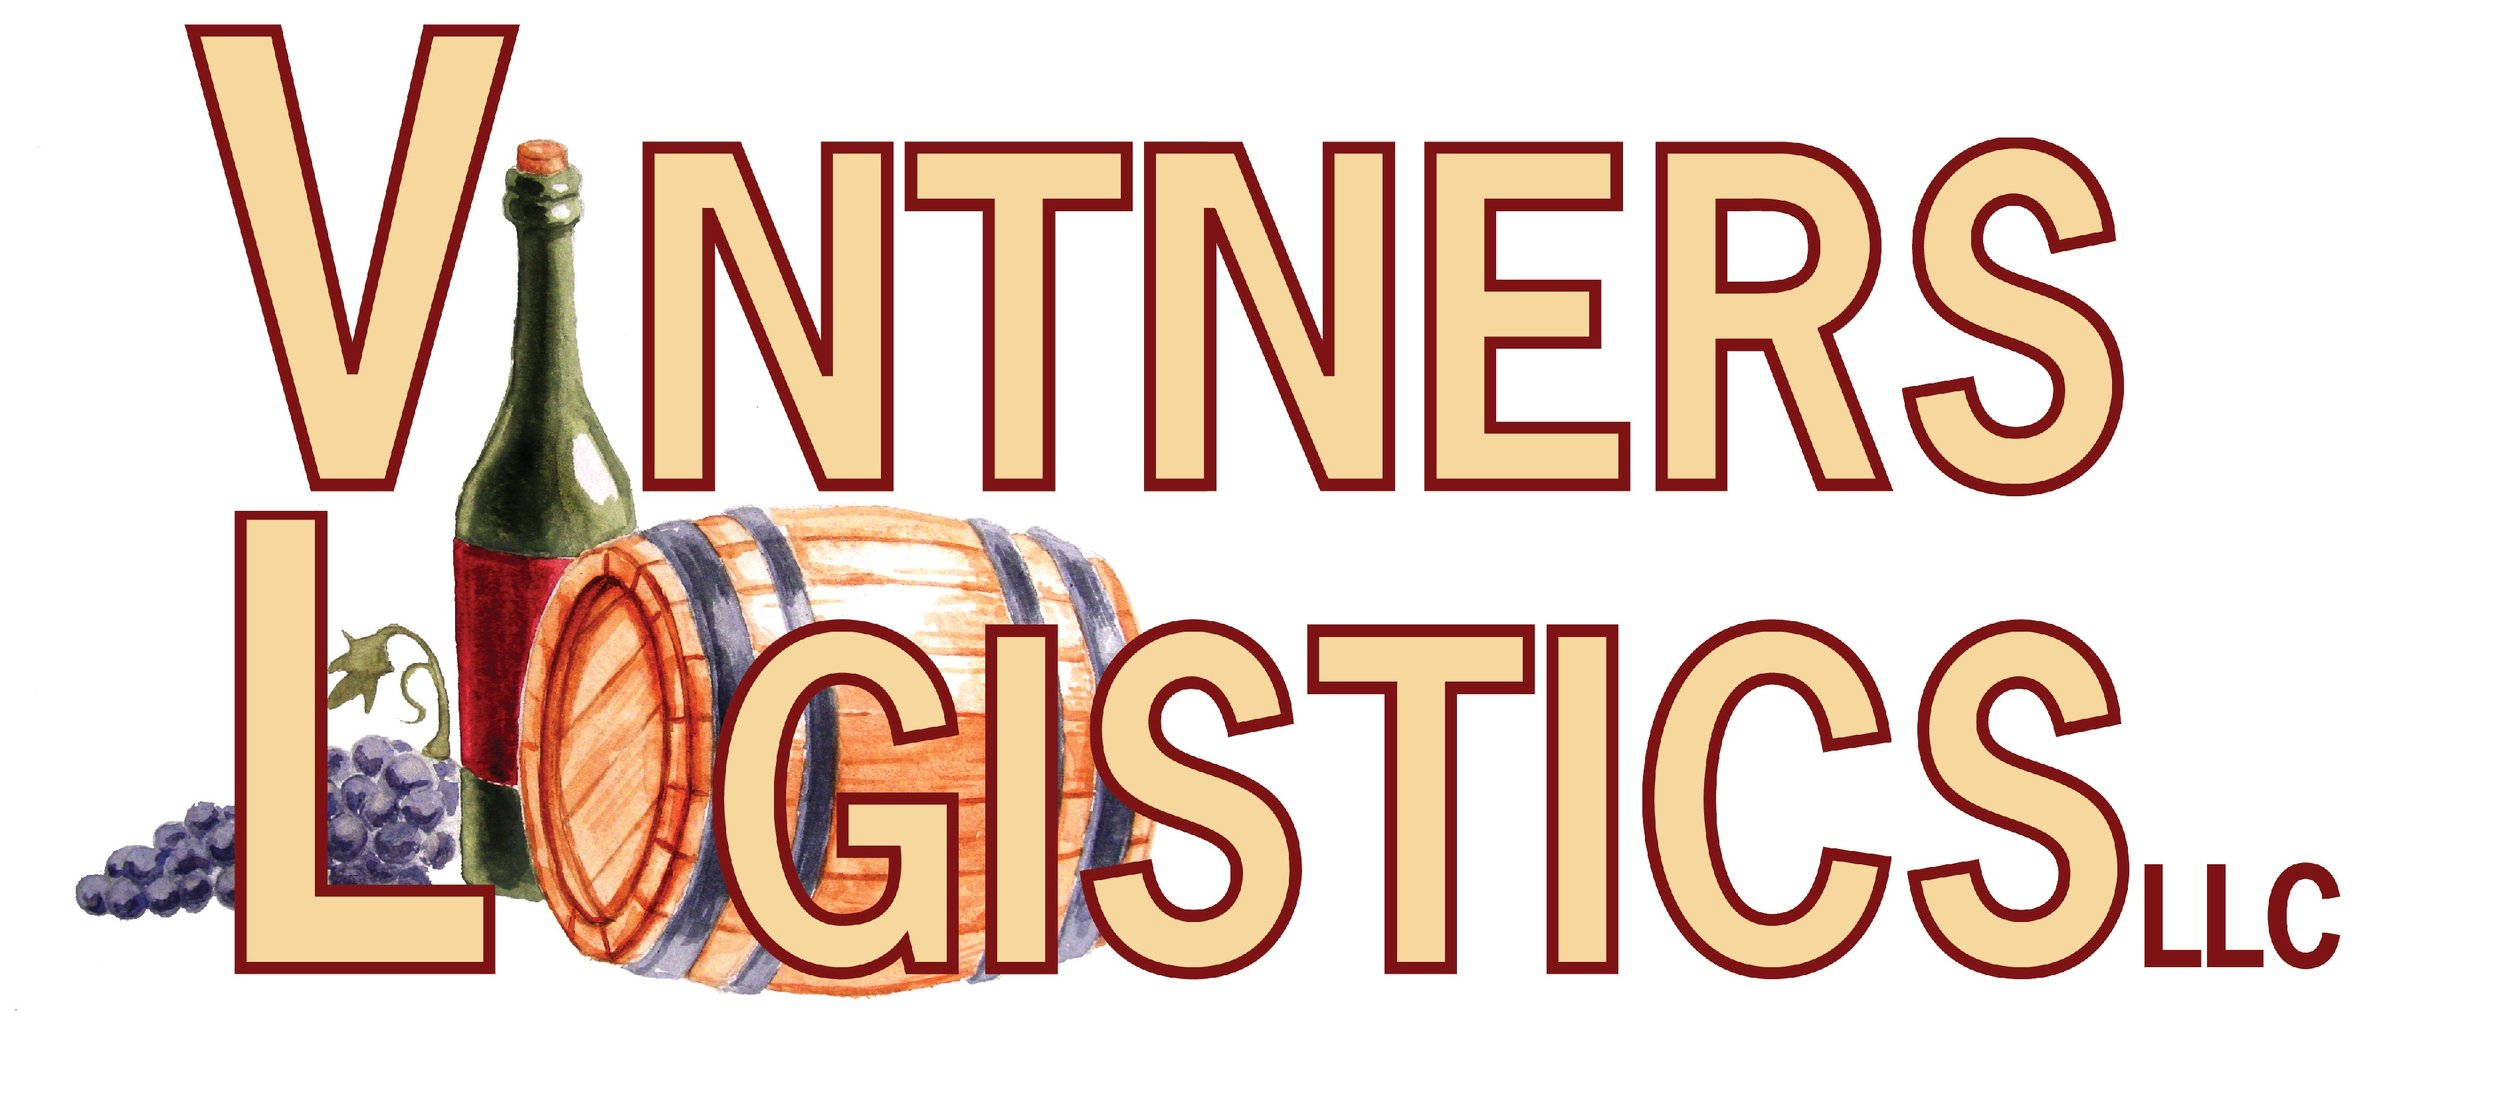 Vintners Logistics in WA